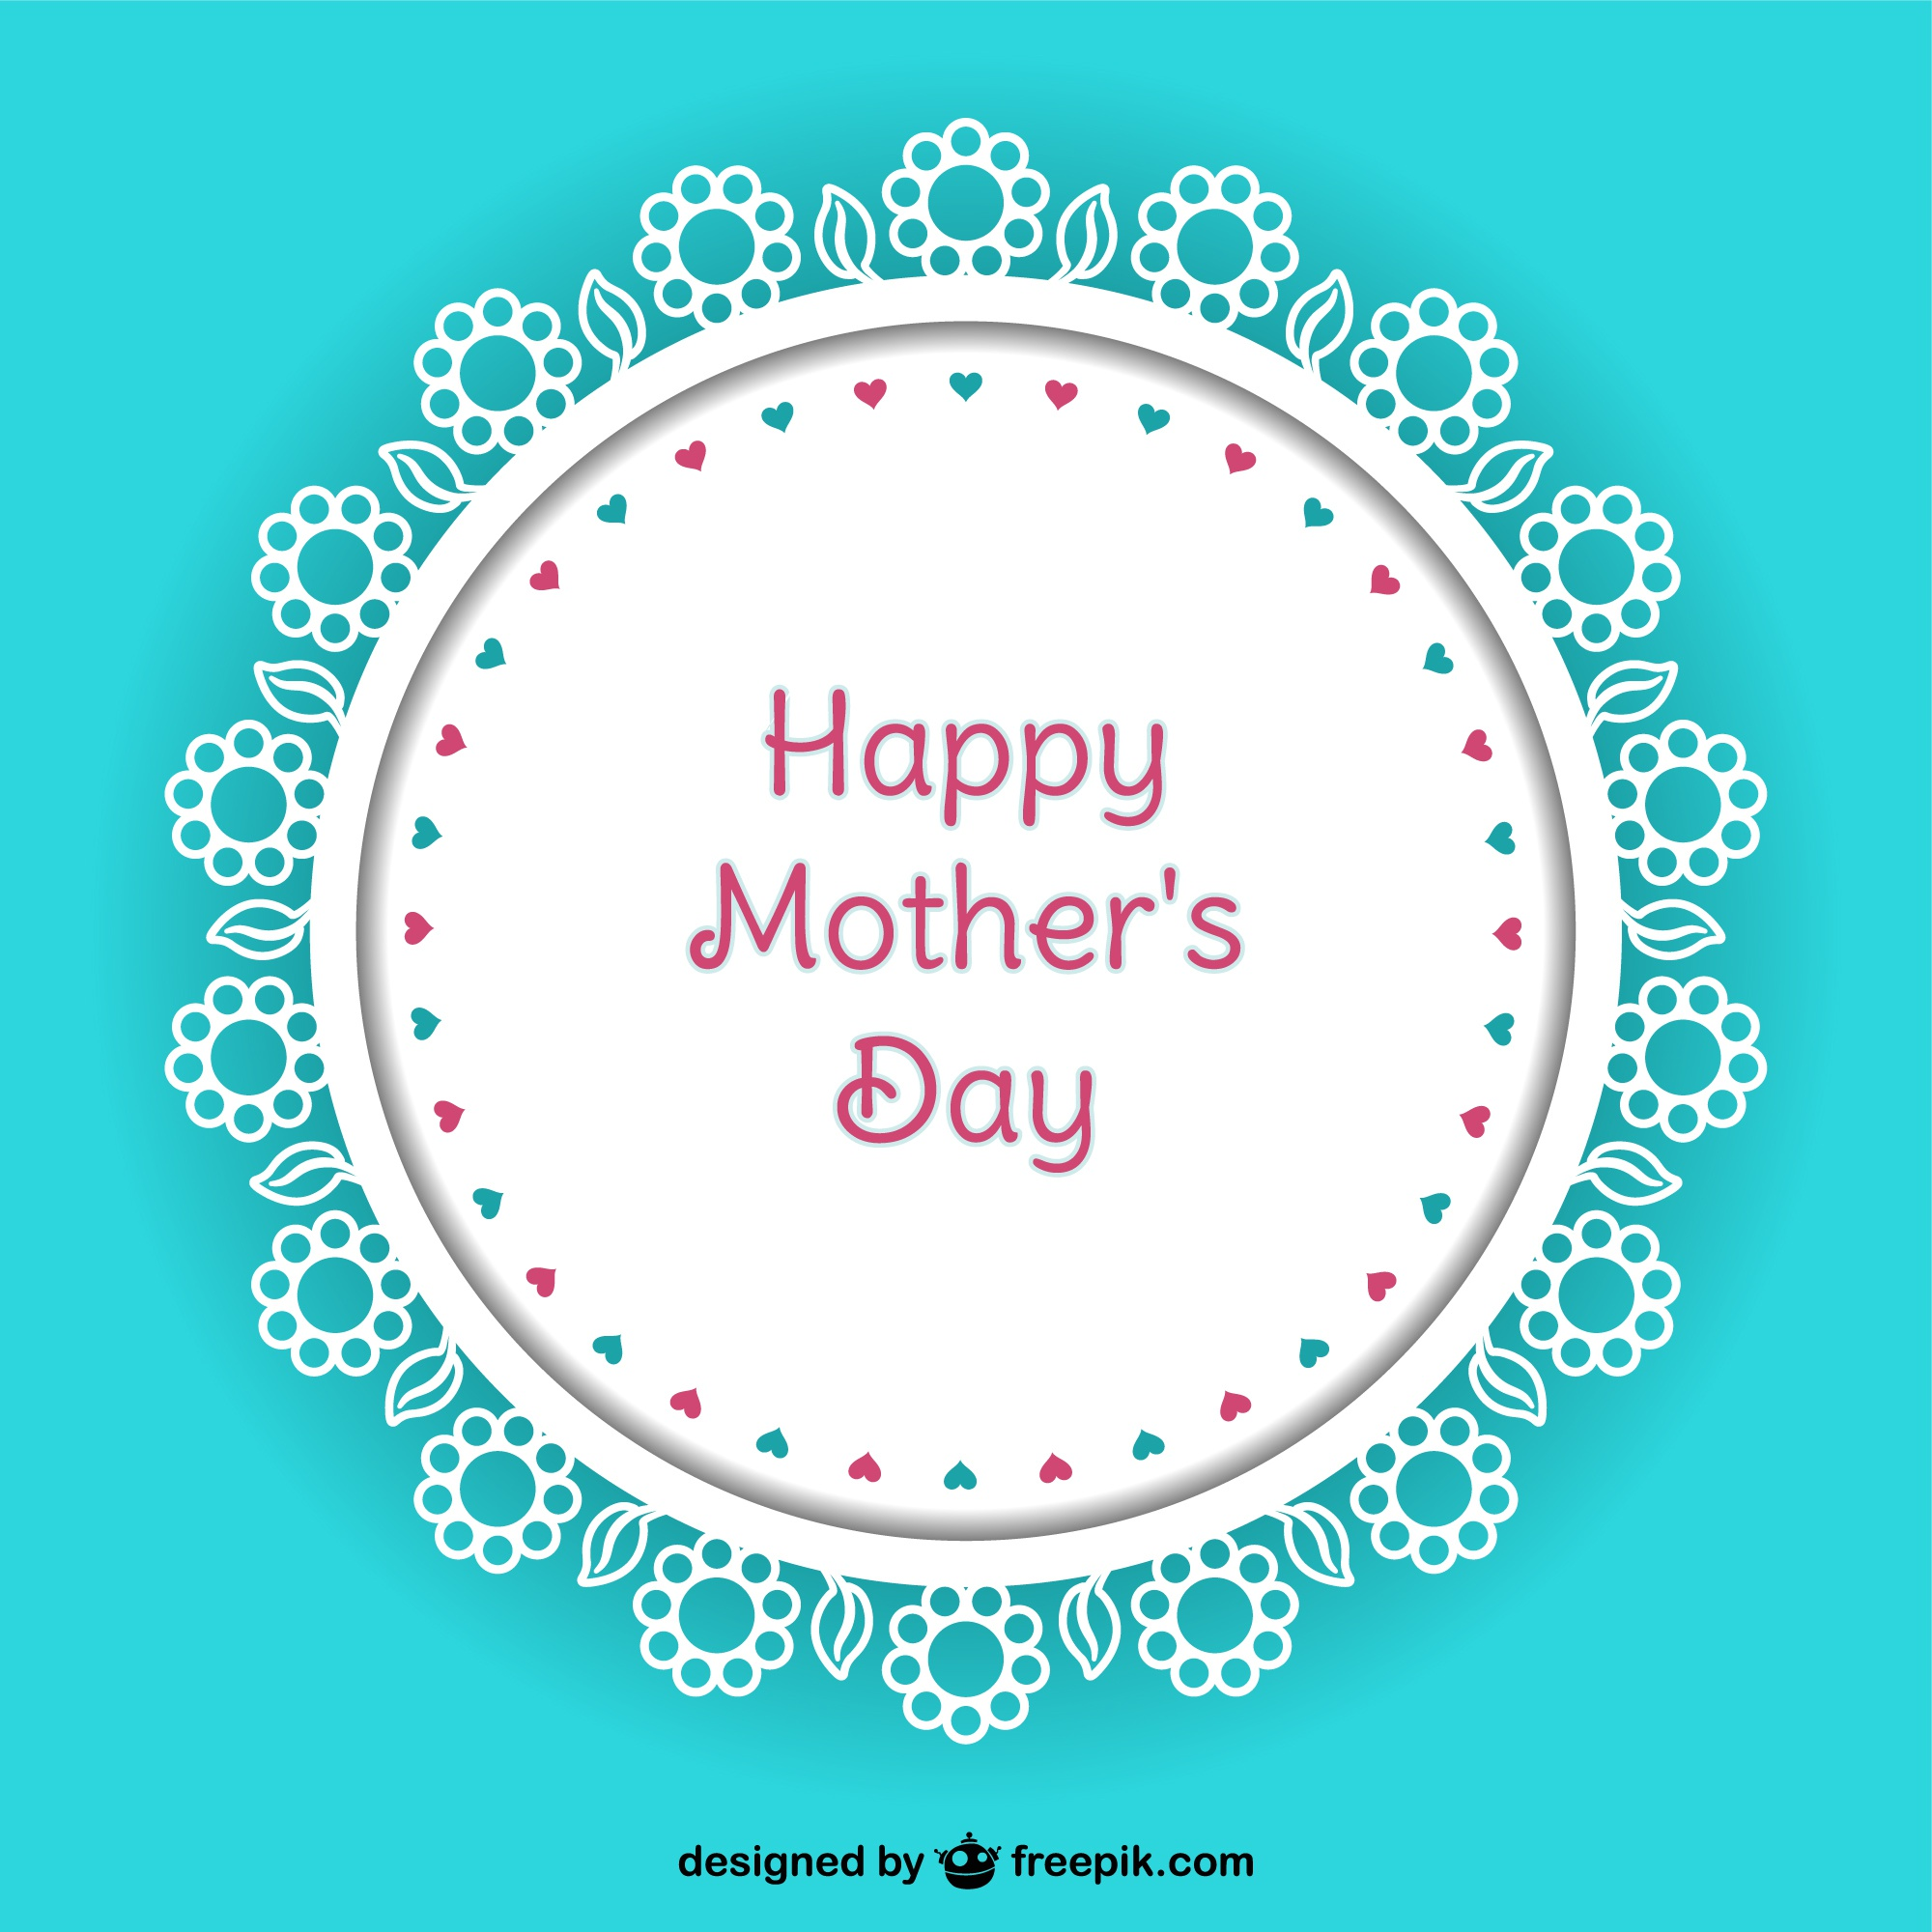 Mother's day vector background